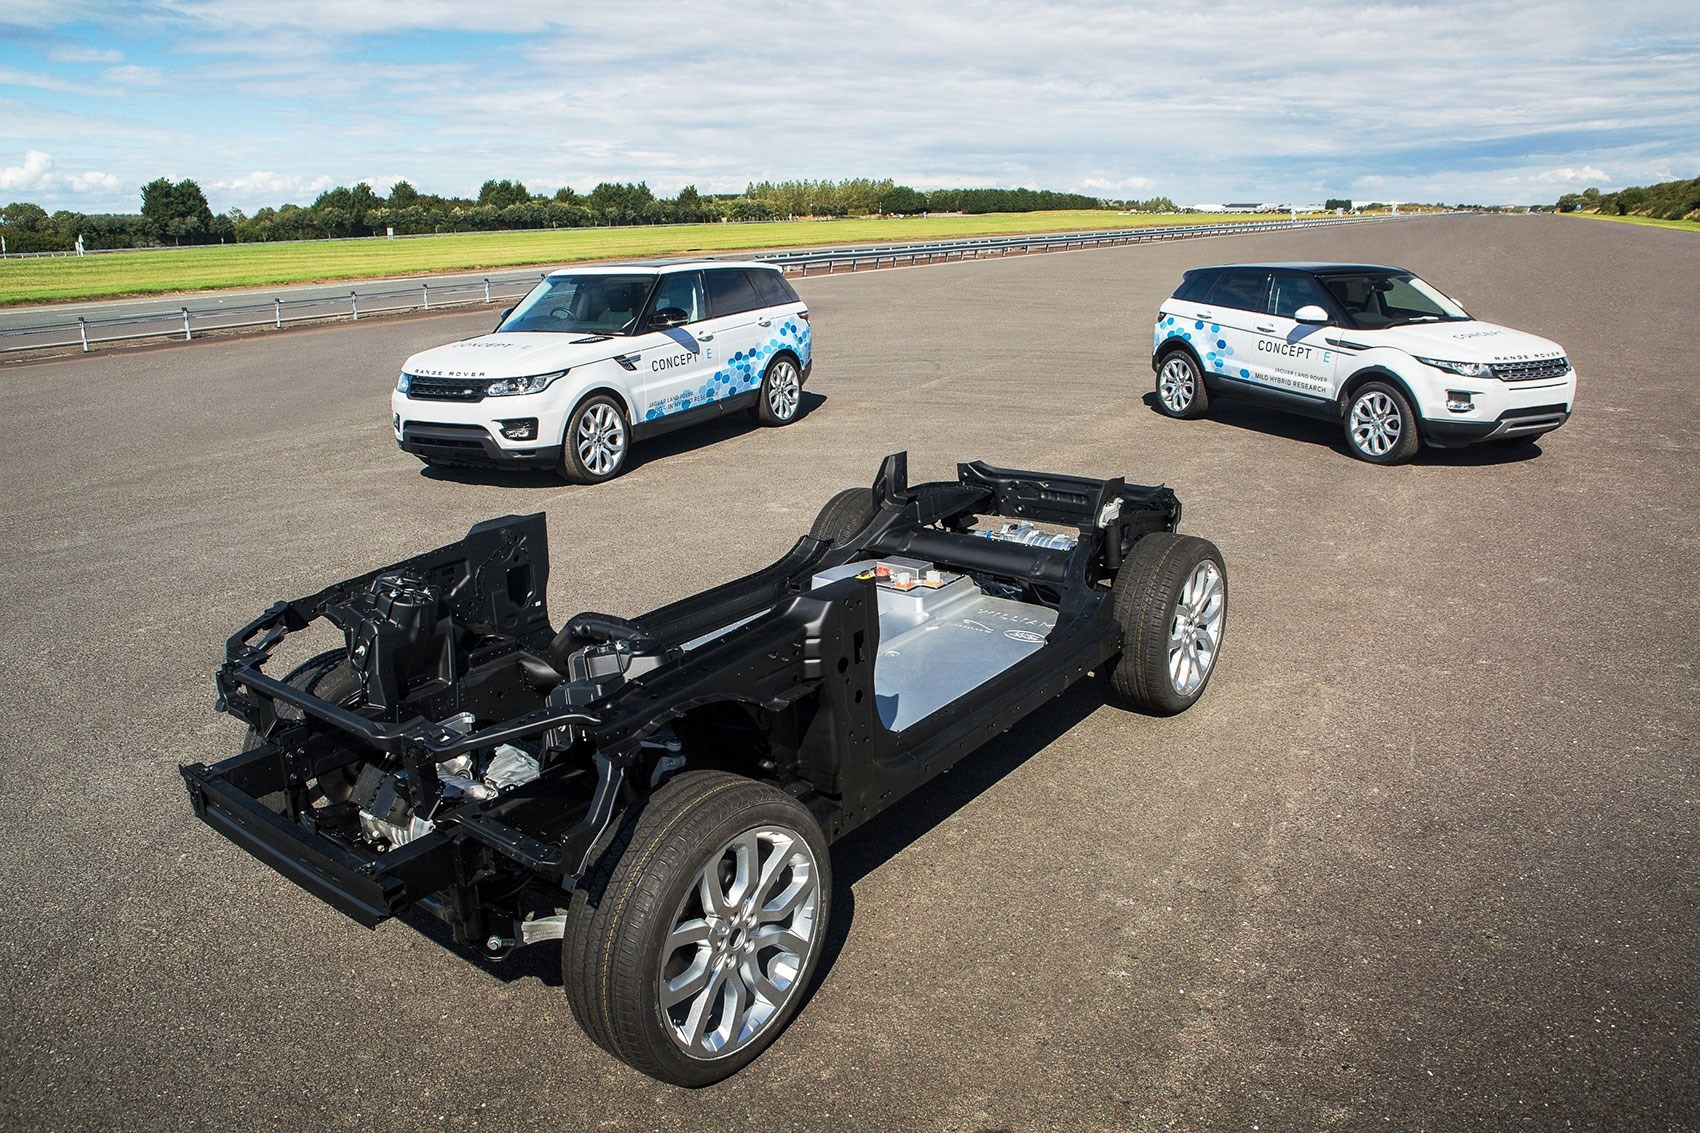 land engine evoque official range model powerful site rover pictures the specs more landrover and year sport tough first discovery news car